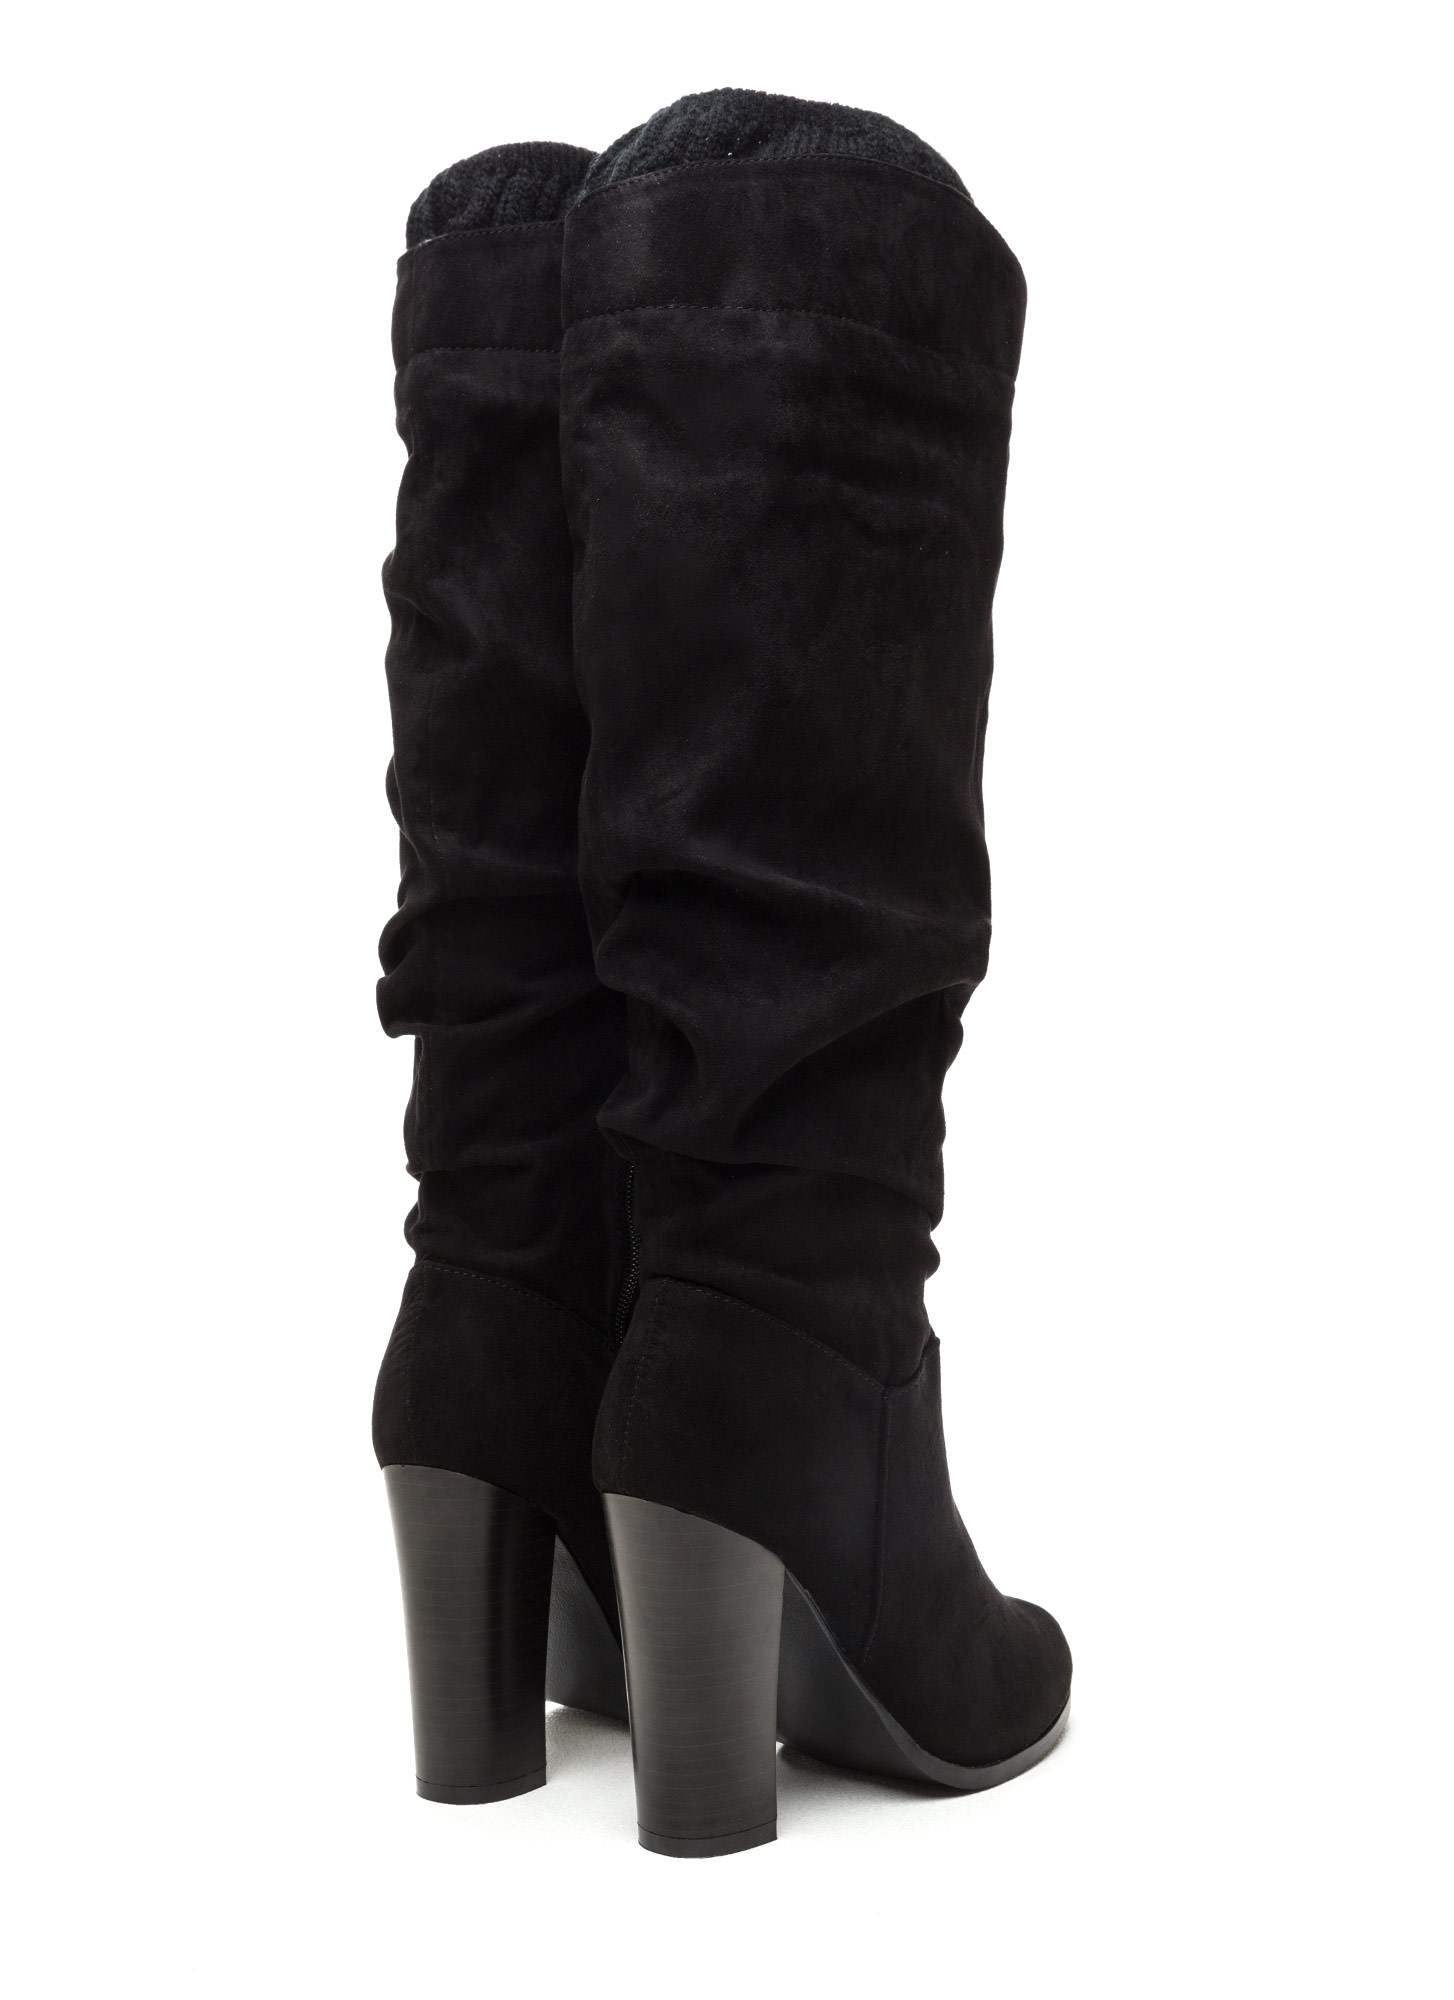 Cuff It Out Slouchy Faux Suede Boots BLACK